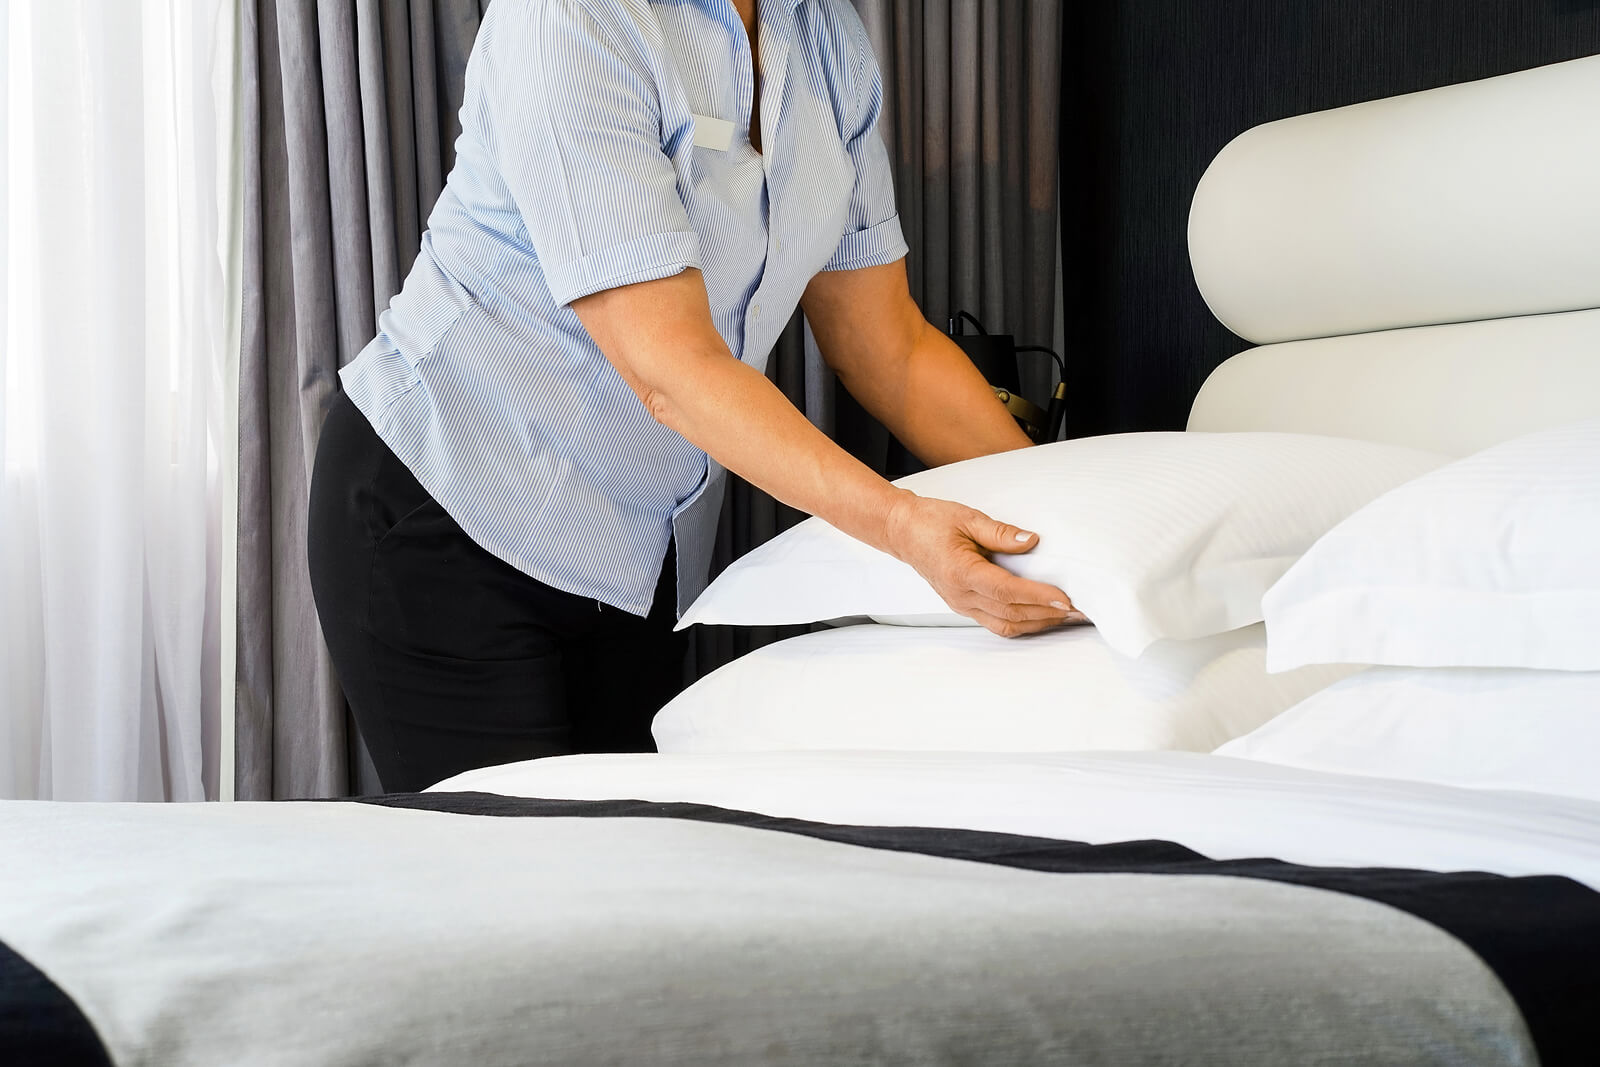 Neptune Township Hospitality Cleaning